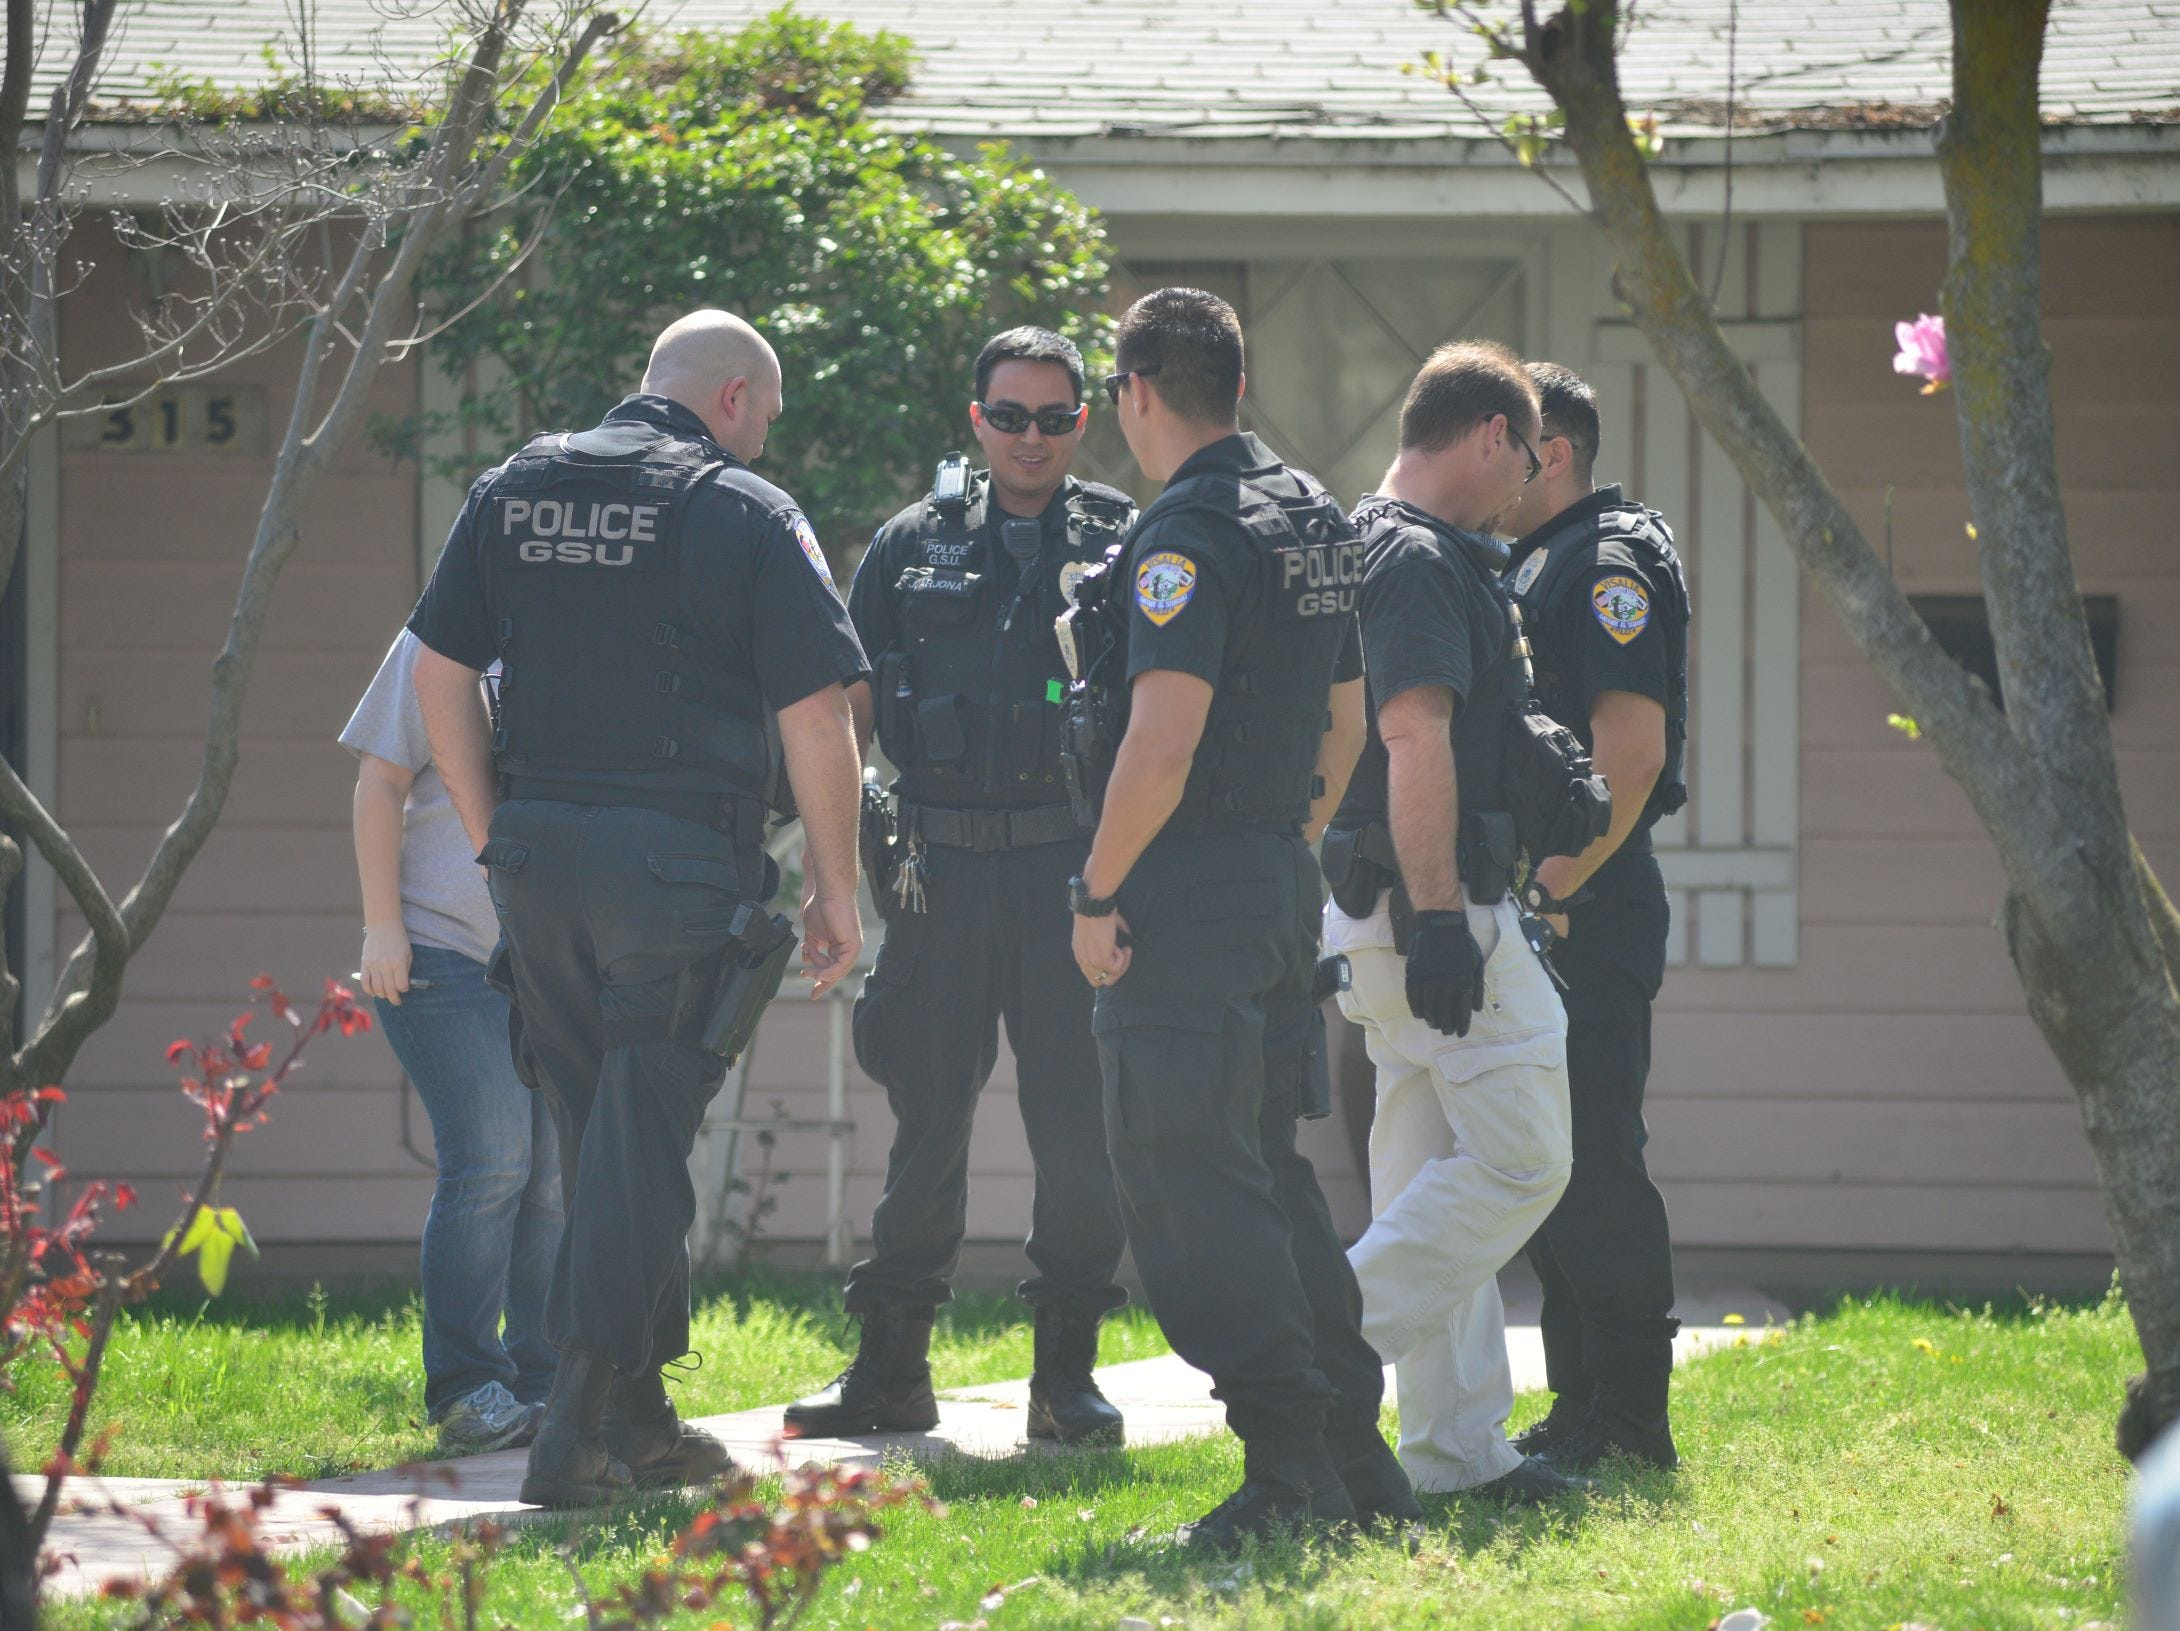 Visalia Chief: 'We are angry' after 2 cops arrested, face prison